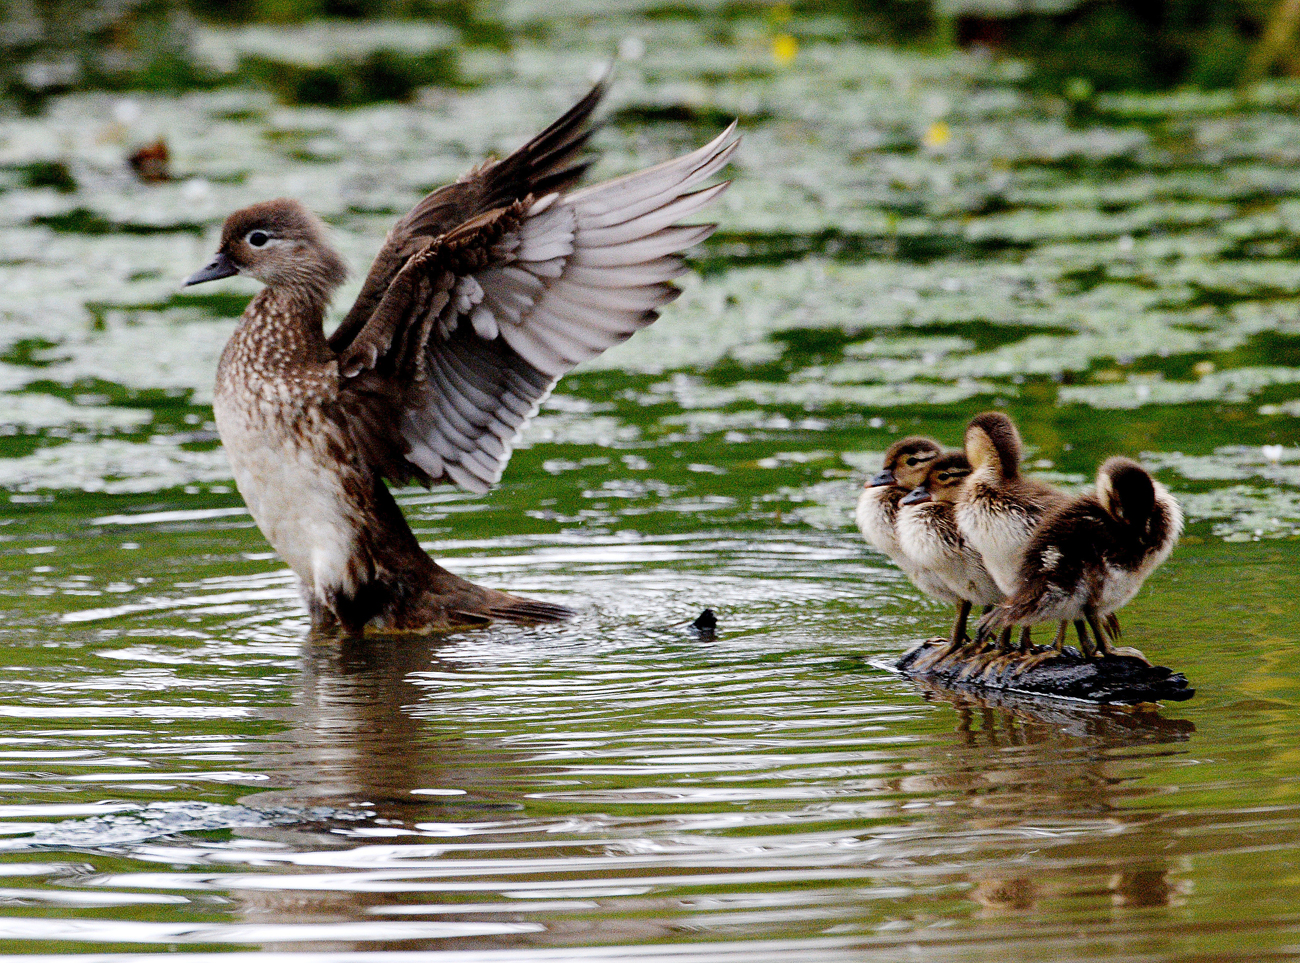 A Mandarin duck with ducklings on a pond in Vladivostok